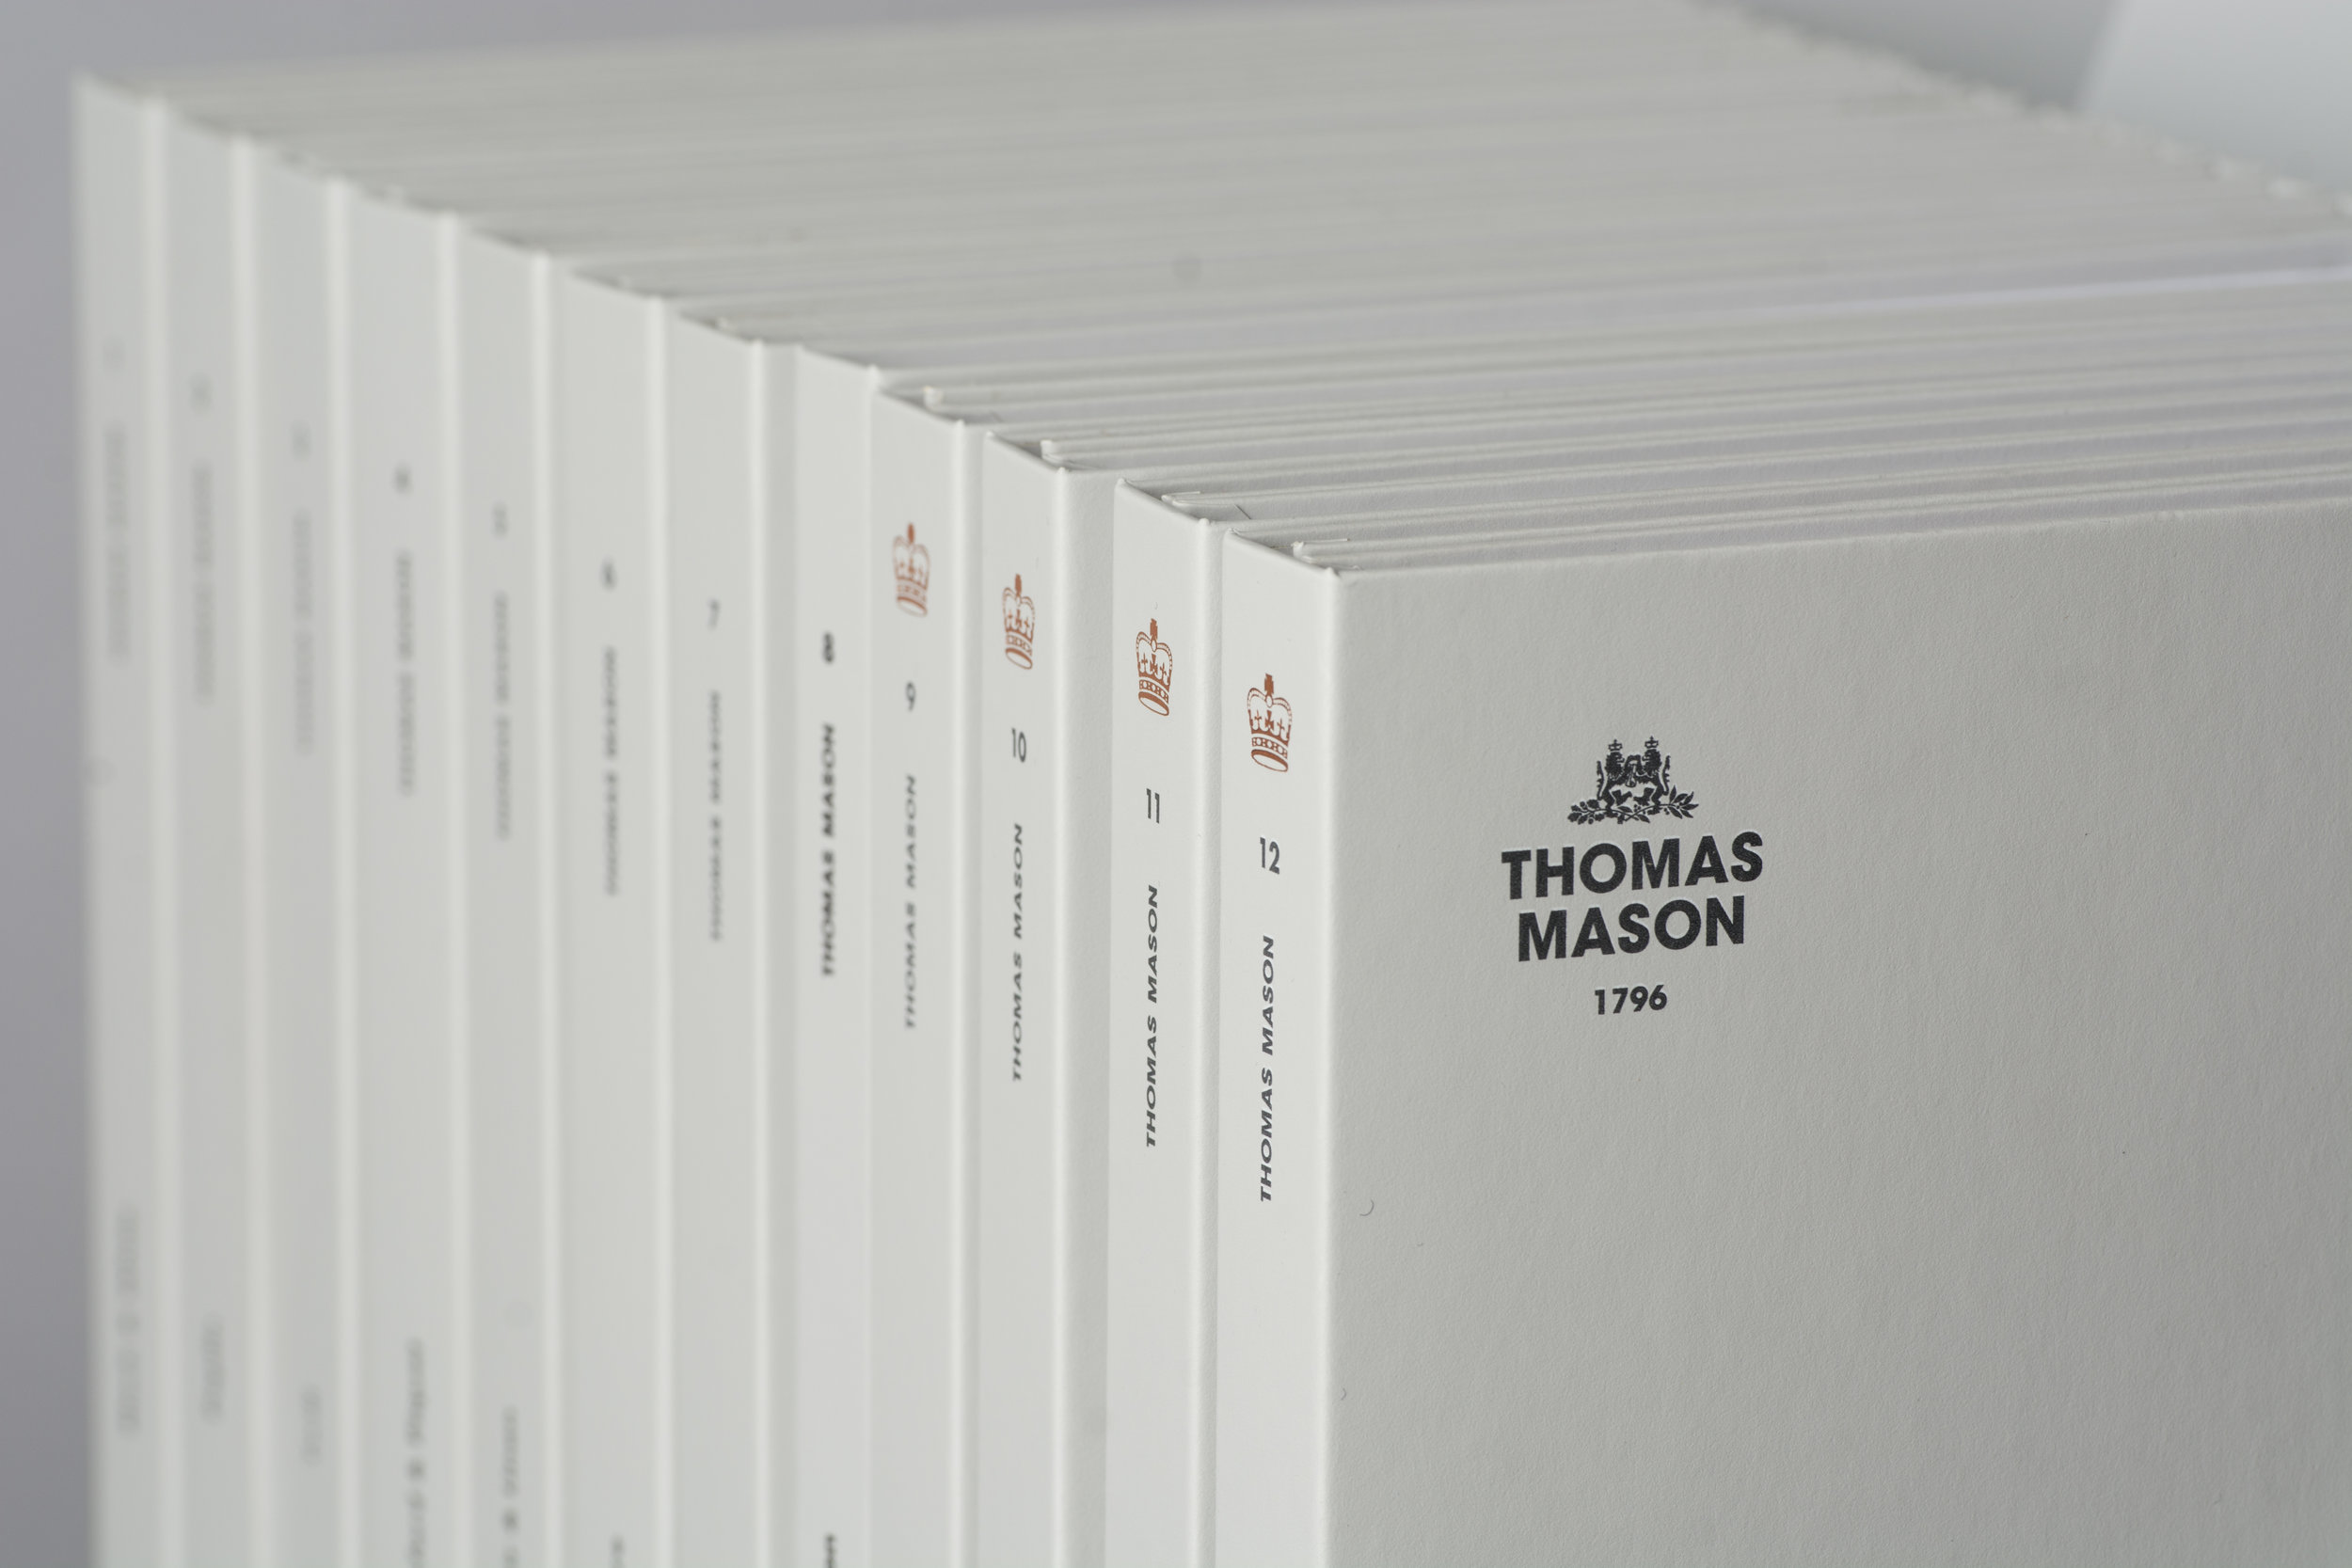 Hall Madden X Thomas Mason 1796 Bespoke Collection